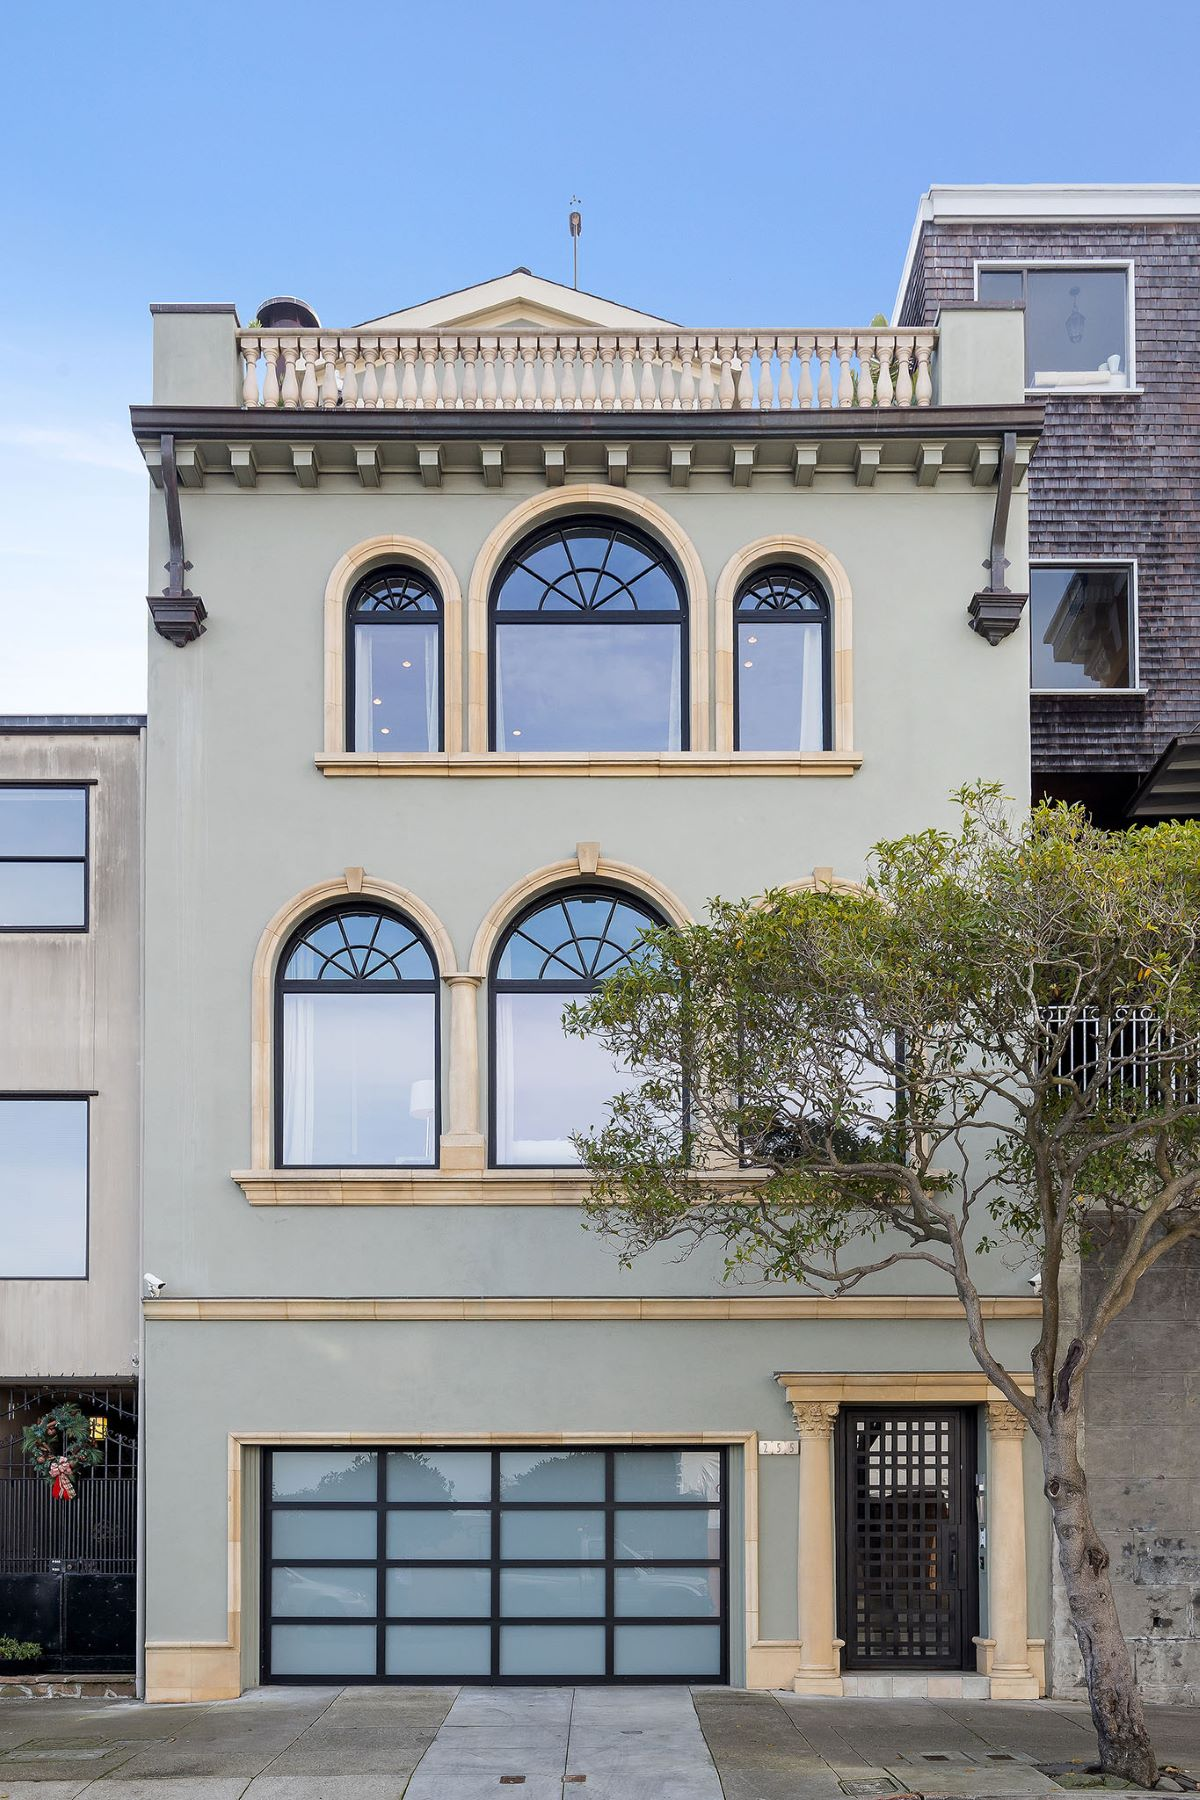 Single Family Homes for Active at Telegraph Hill Mediterranean View Home 255 Chestnut St San Francisco, California 94133 United States